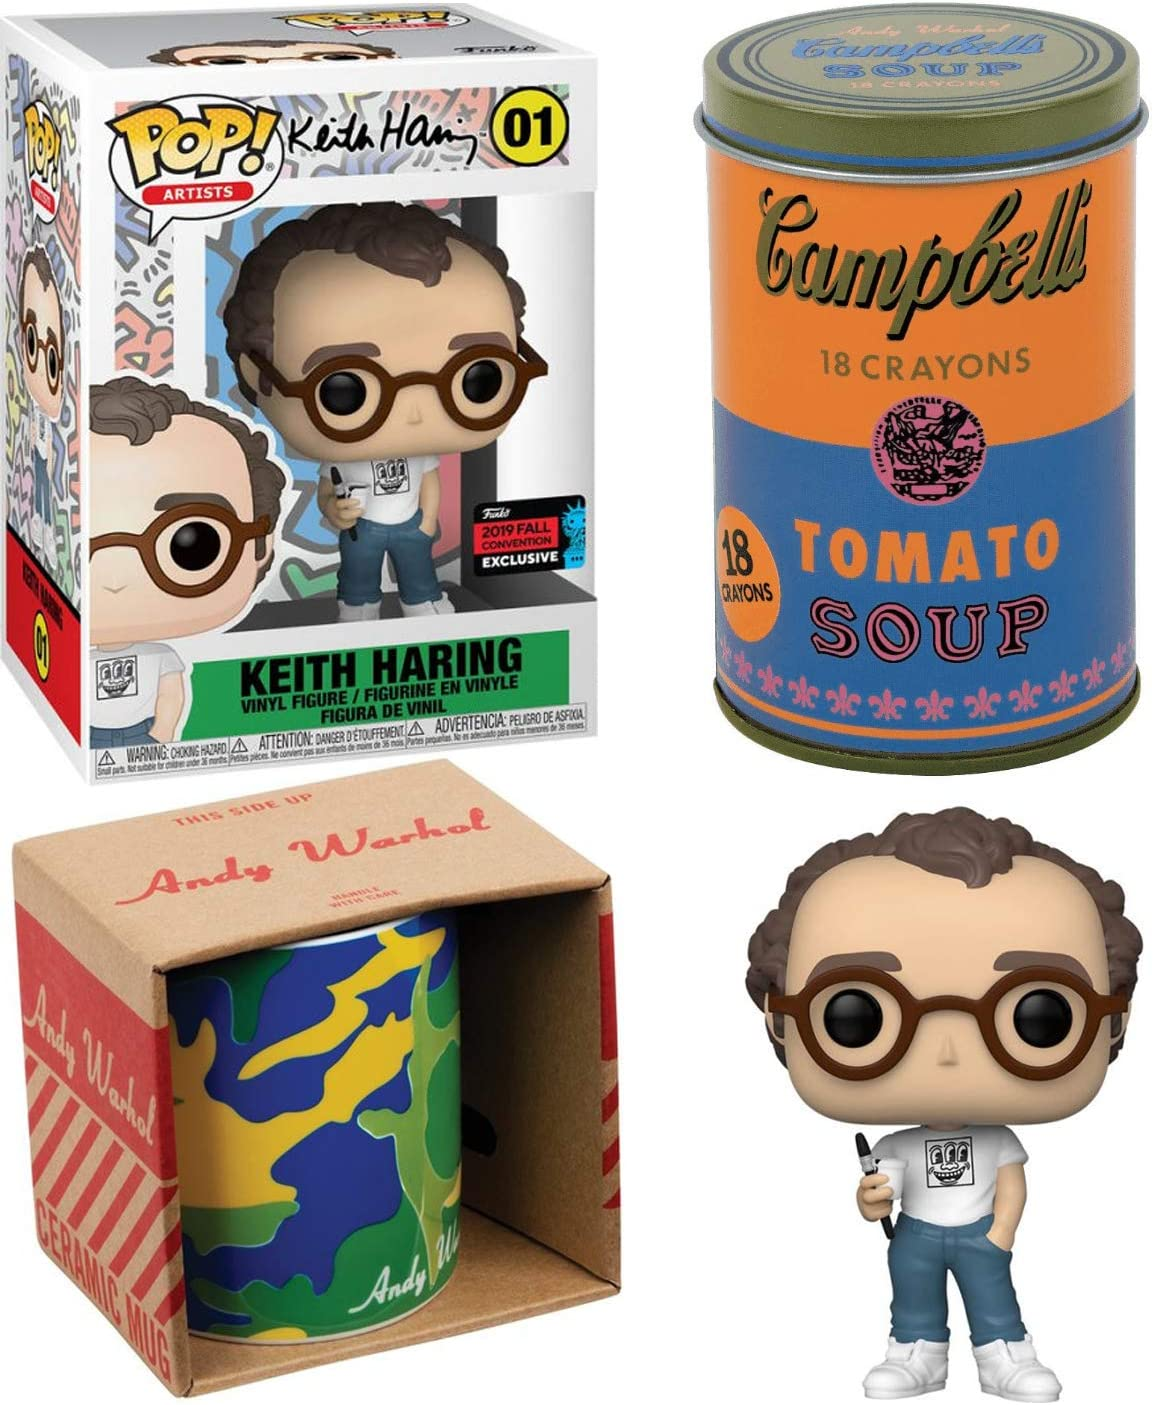 Factory Artists Pop Keith Haring Art Series Figure Exclusive Bundled with Andy Warhol Soup Can Crayons Camouflage Mug 3 Items